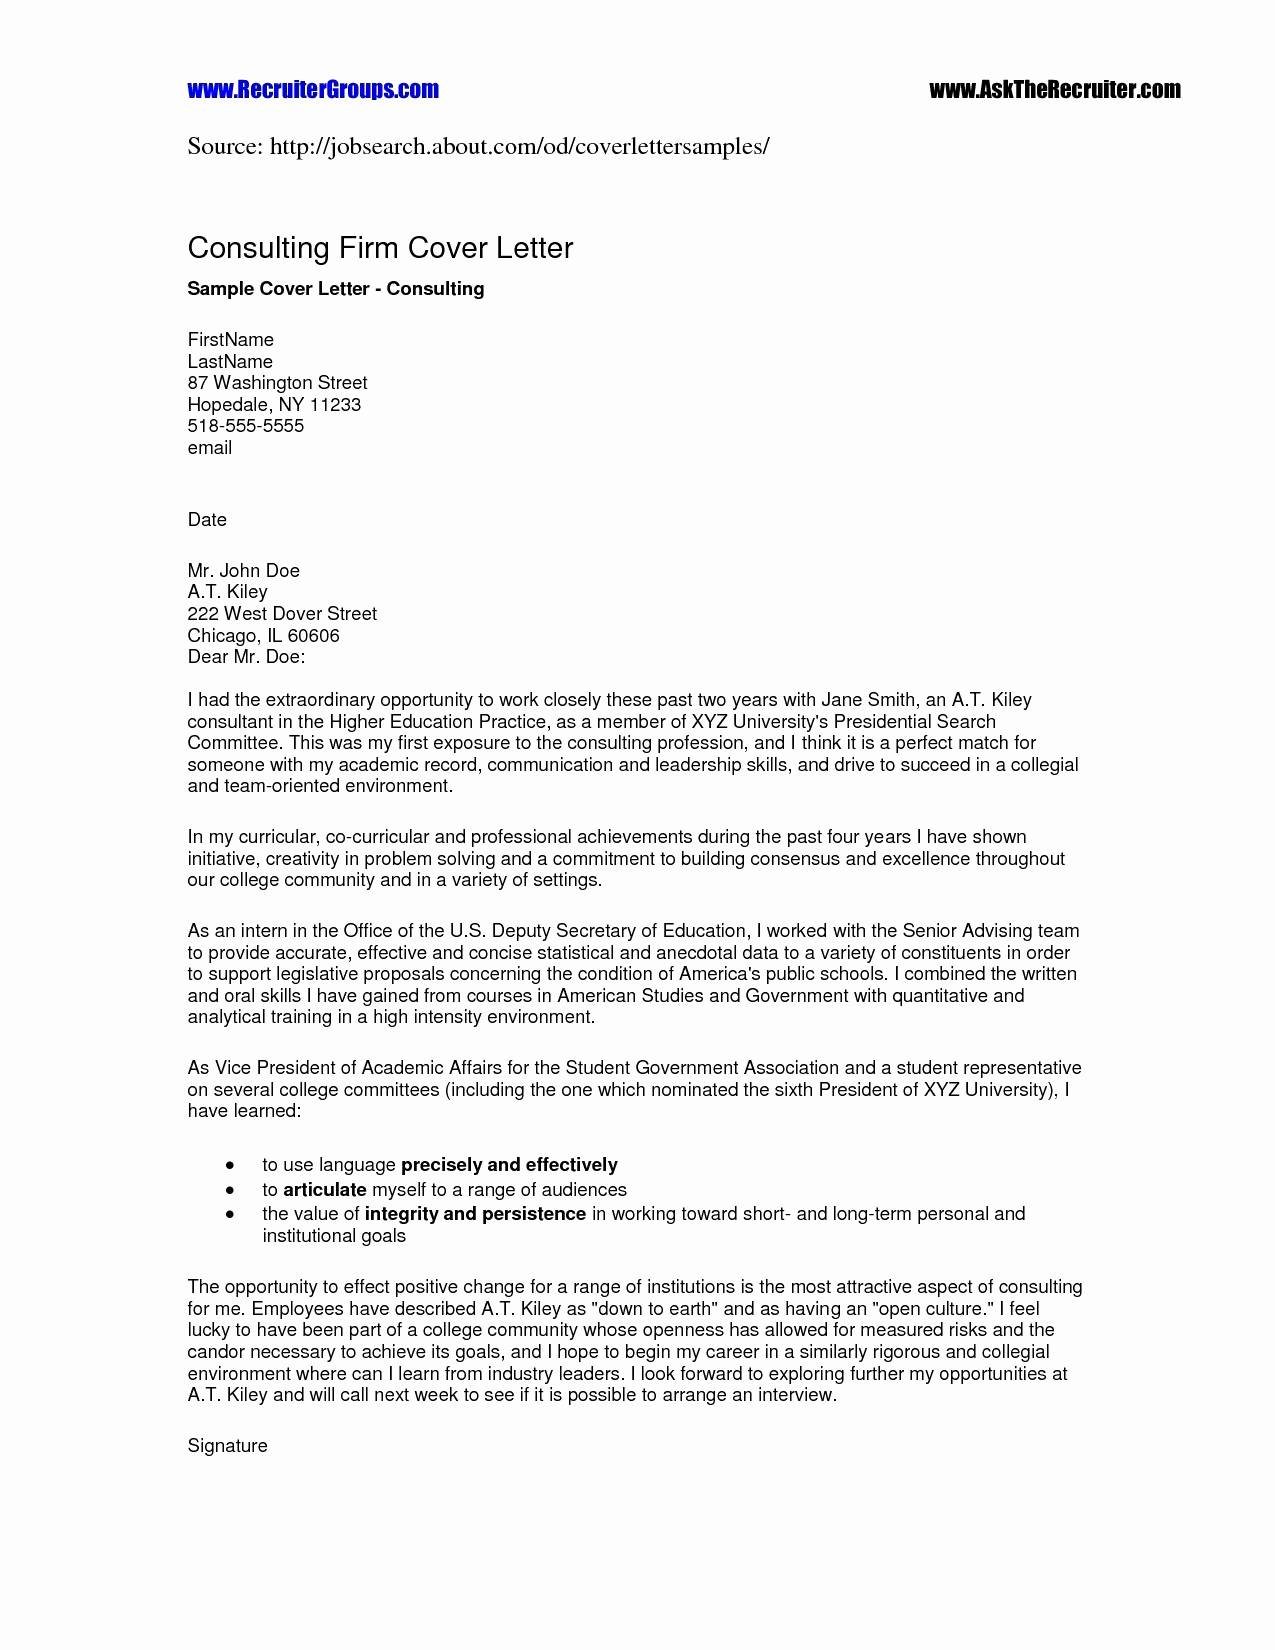 Clinical Research Coordinator Resume Objective - Clinical Trial Close Out Letter Template Examples